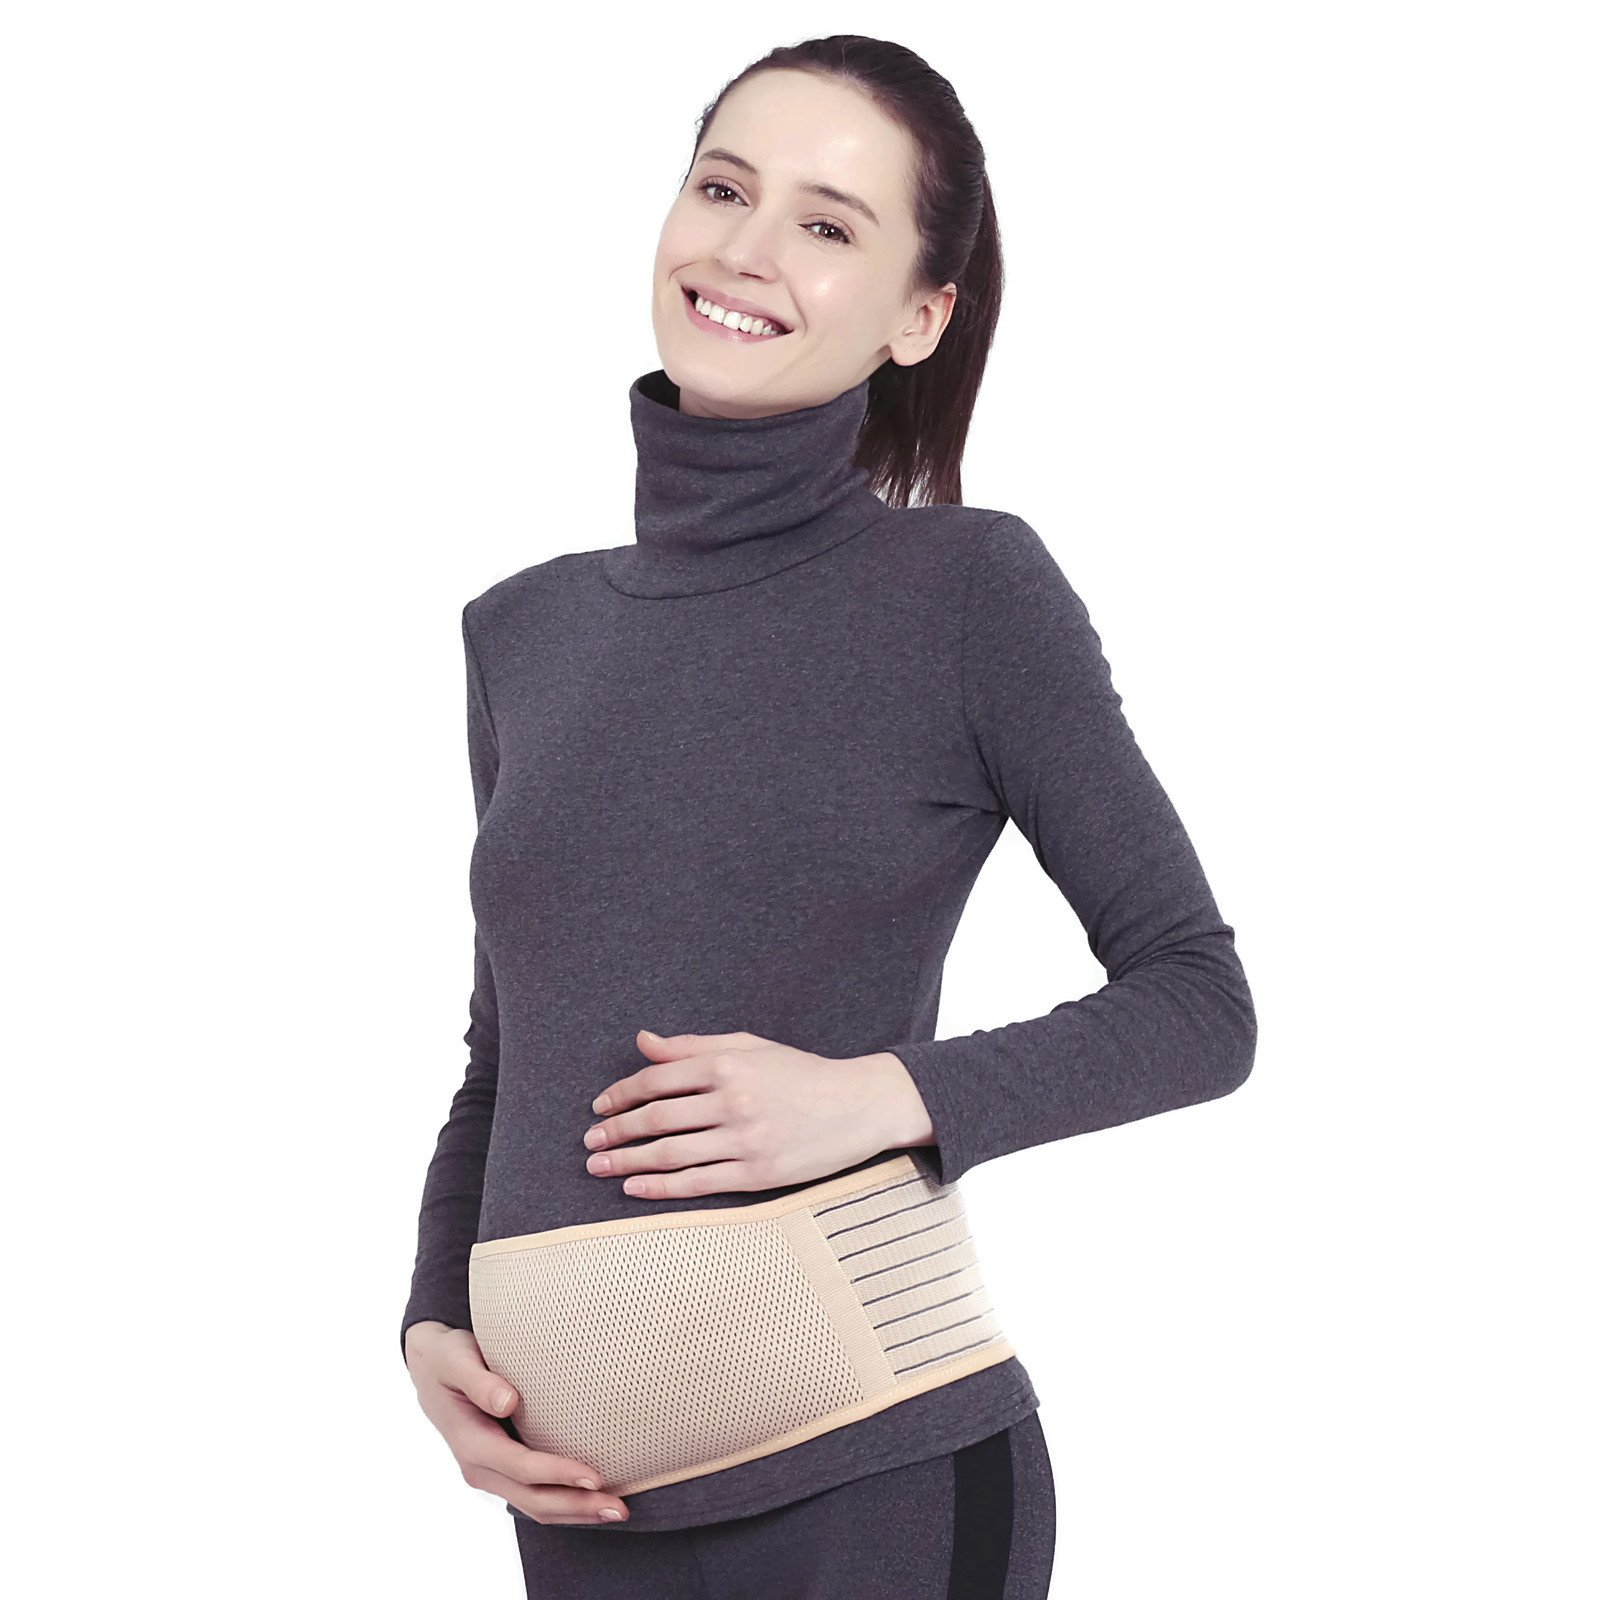 Maternity Belt Support, Pregnancy Support Belt, Belly Band Pregnancy, Effective Pregnancy Back Belly Support & Breathable Abdominal Binder, Beige/One Size by GroovyQueen